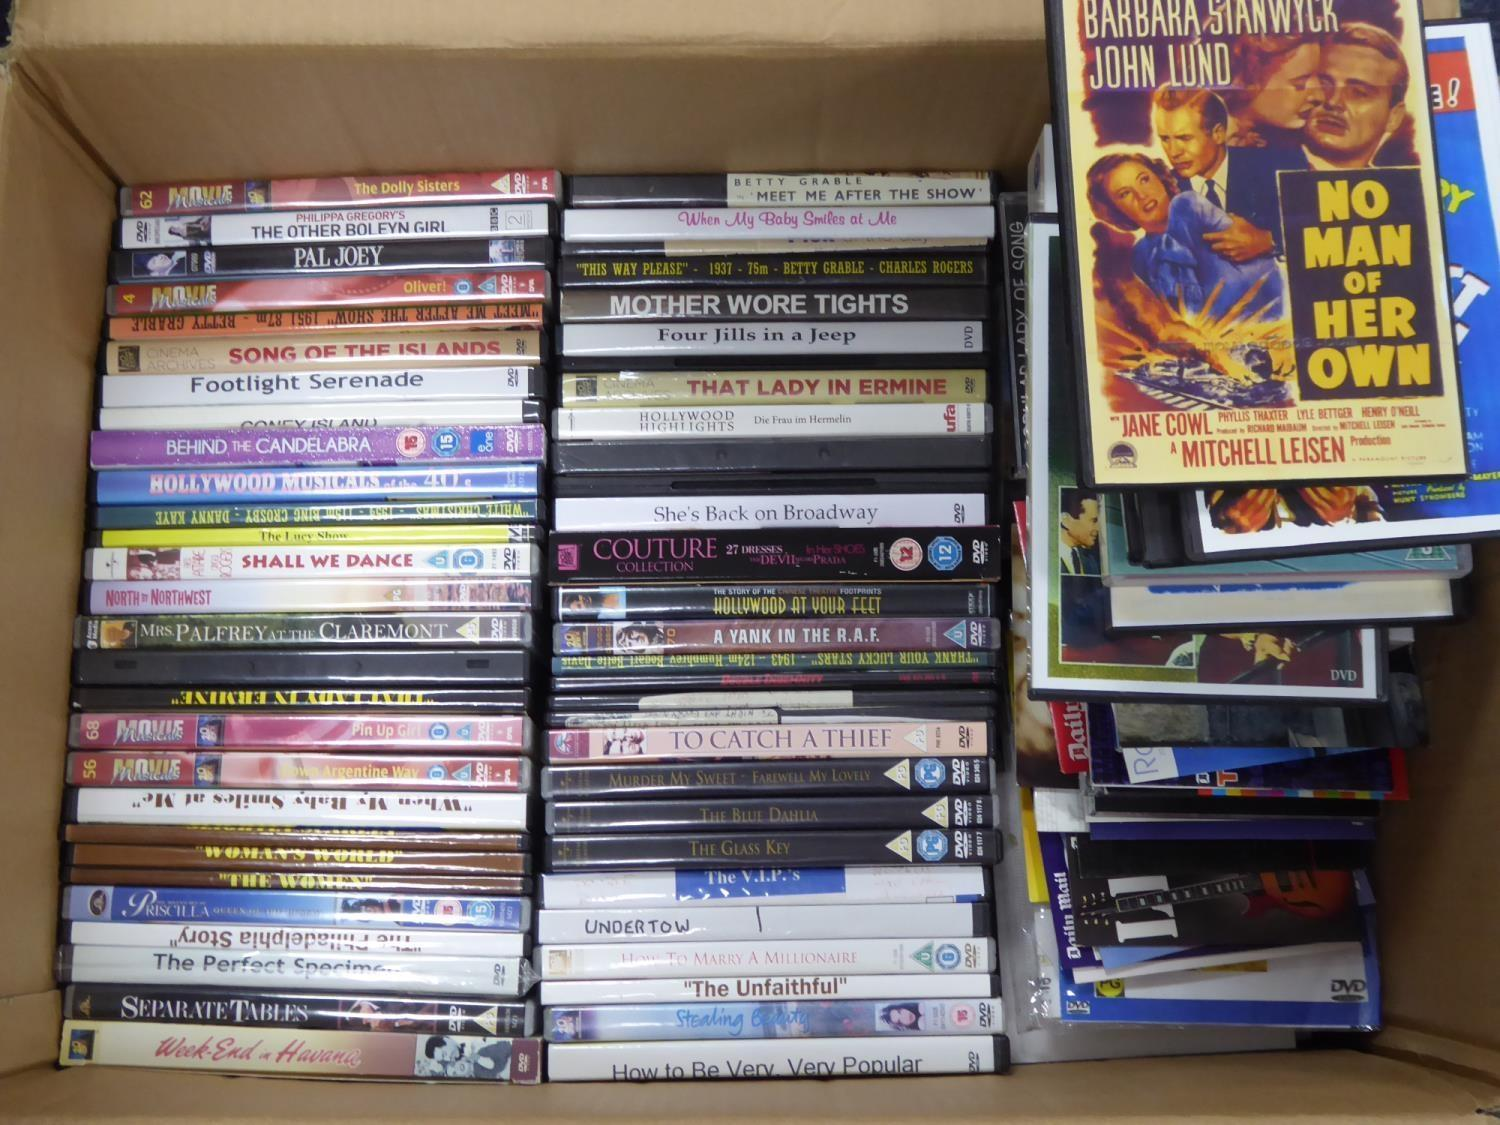 Lot 250 - OVER 200 DVDs AND CDs, MAINLY CLASSIC FILMS including Betty Grable films (circa 50% of DVDs are